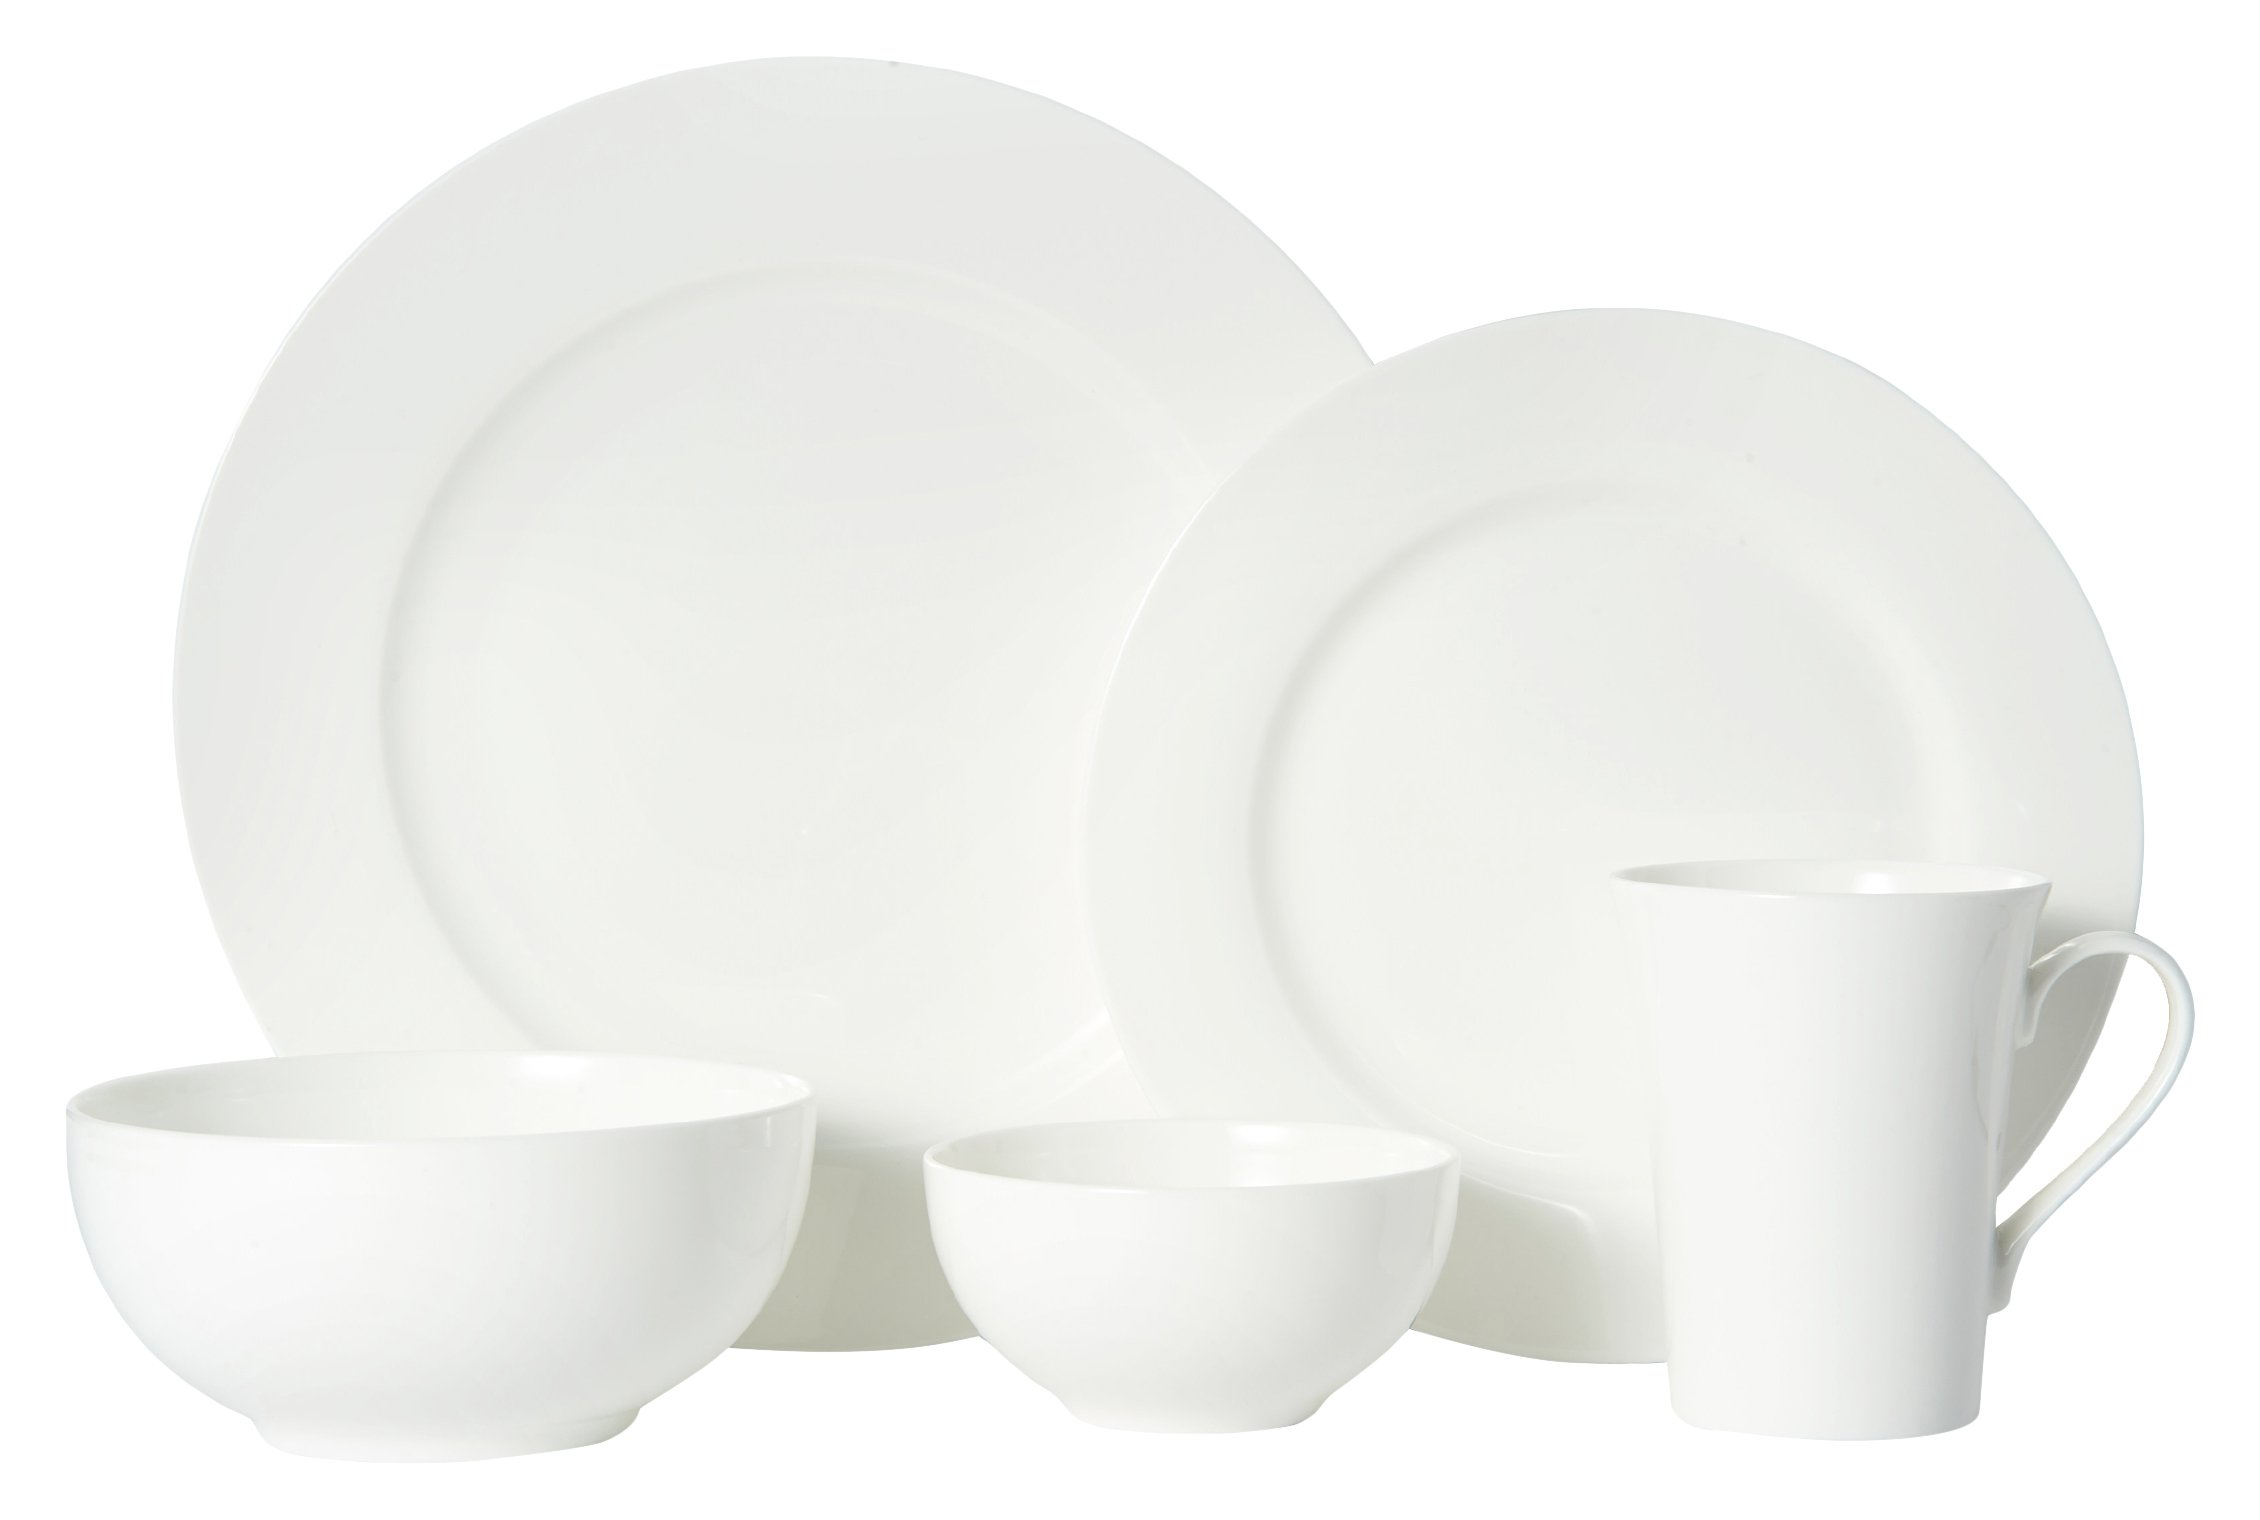 Mikasa 5225580 40 Piece Delray Bone China Dinnerware Set, White by Mikasa